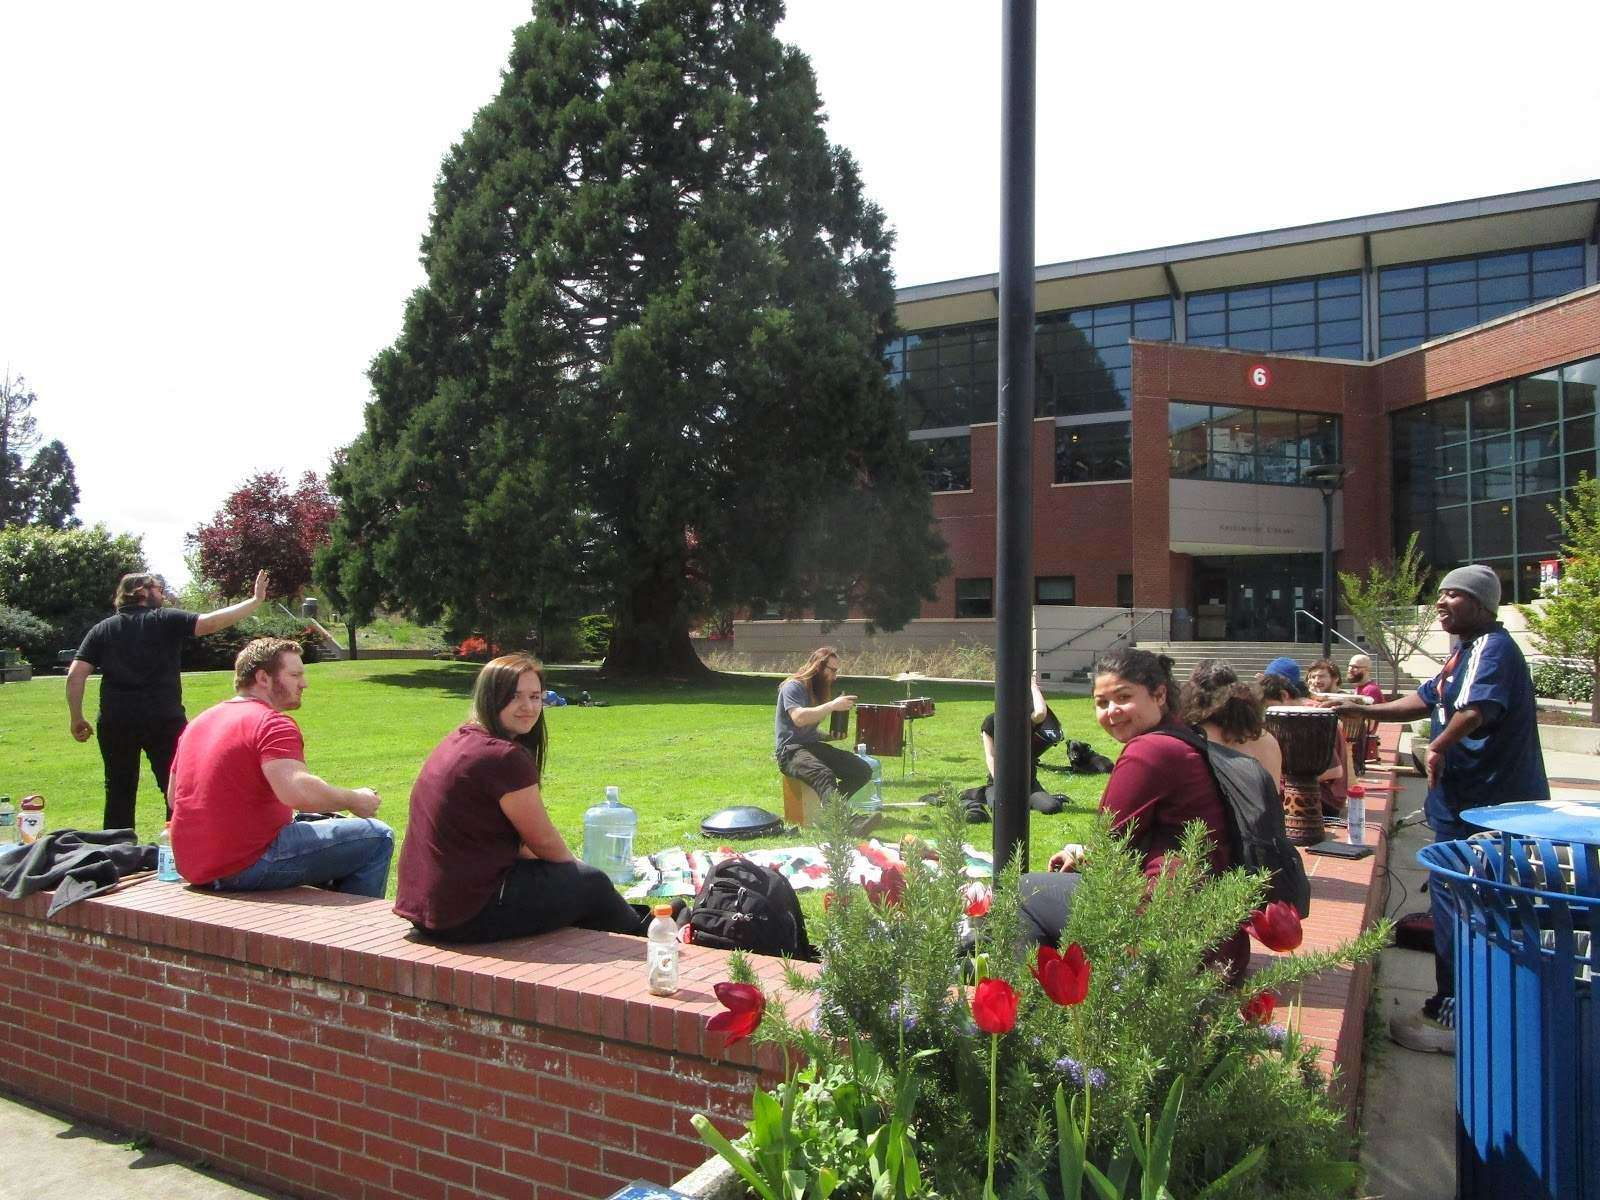 Students sit on the green in front of HL building playing drums - Music By Everyone - (Source: Caleb Lizon)